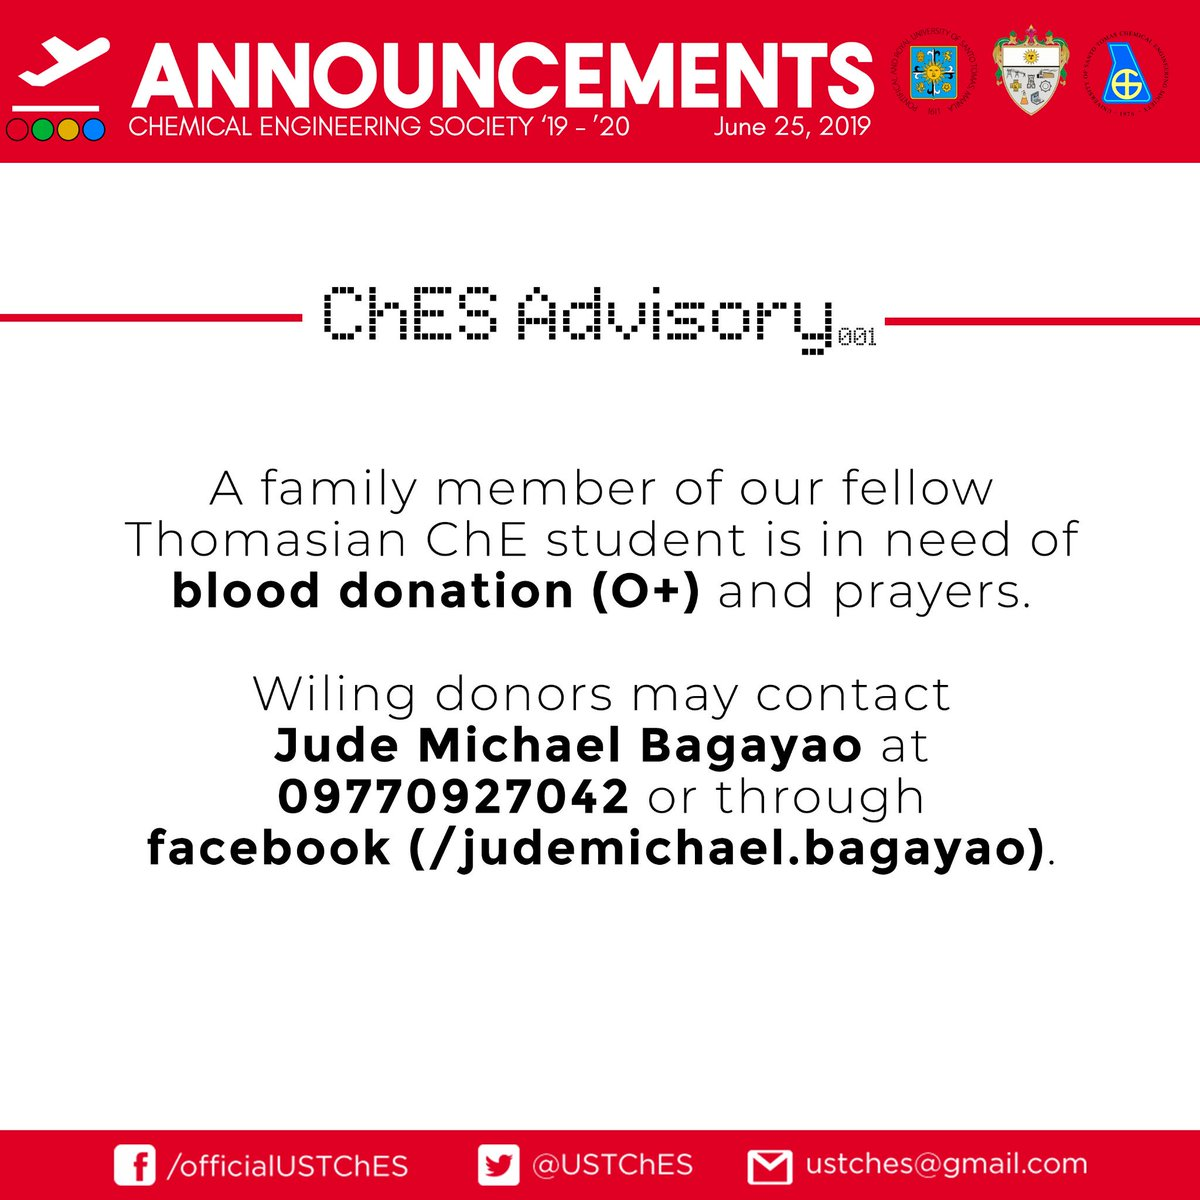 """URGENT CALL FOR BLOOD TYPE """"O+"""" DONOR. This is for Jude Michael Bagayao's mother who is in the hospital at the moment. If you are willing to donate, please contact Jude Michael Bagayao using the info below.  Let's include their family in our prayers for a speedy recovery."""